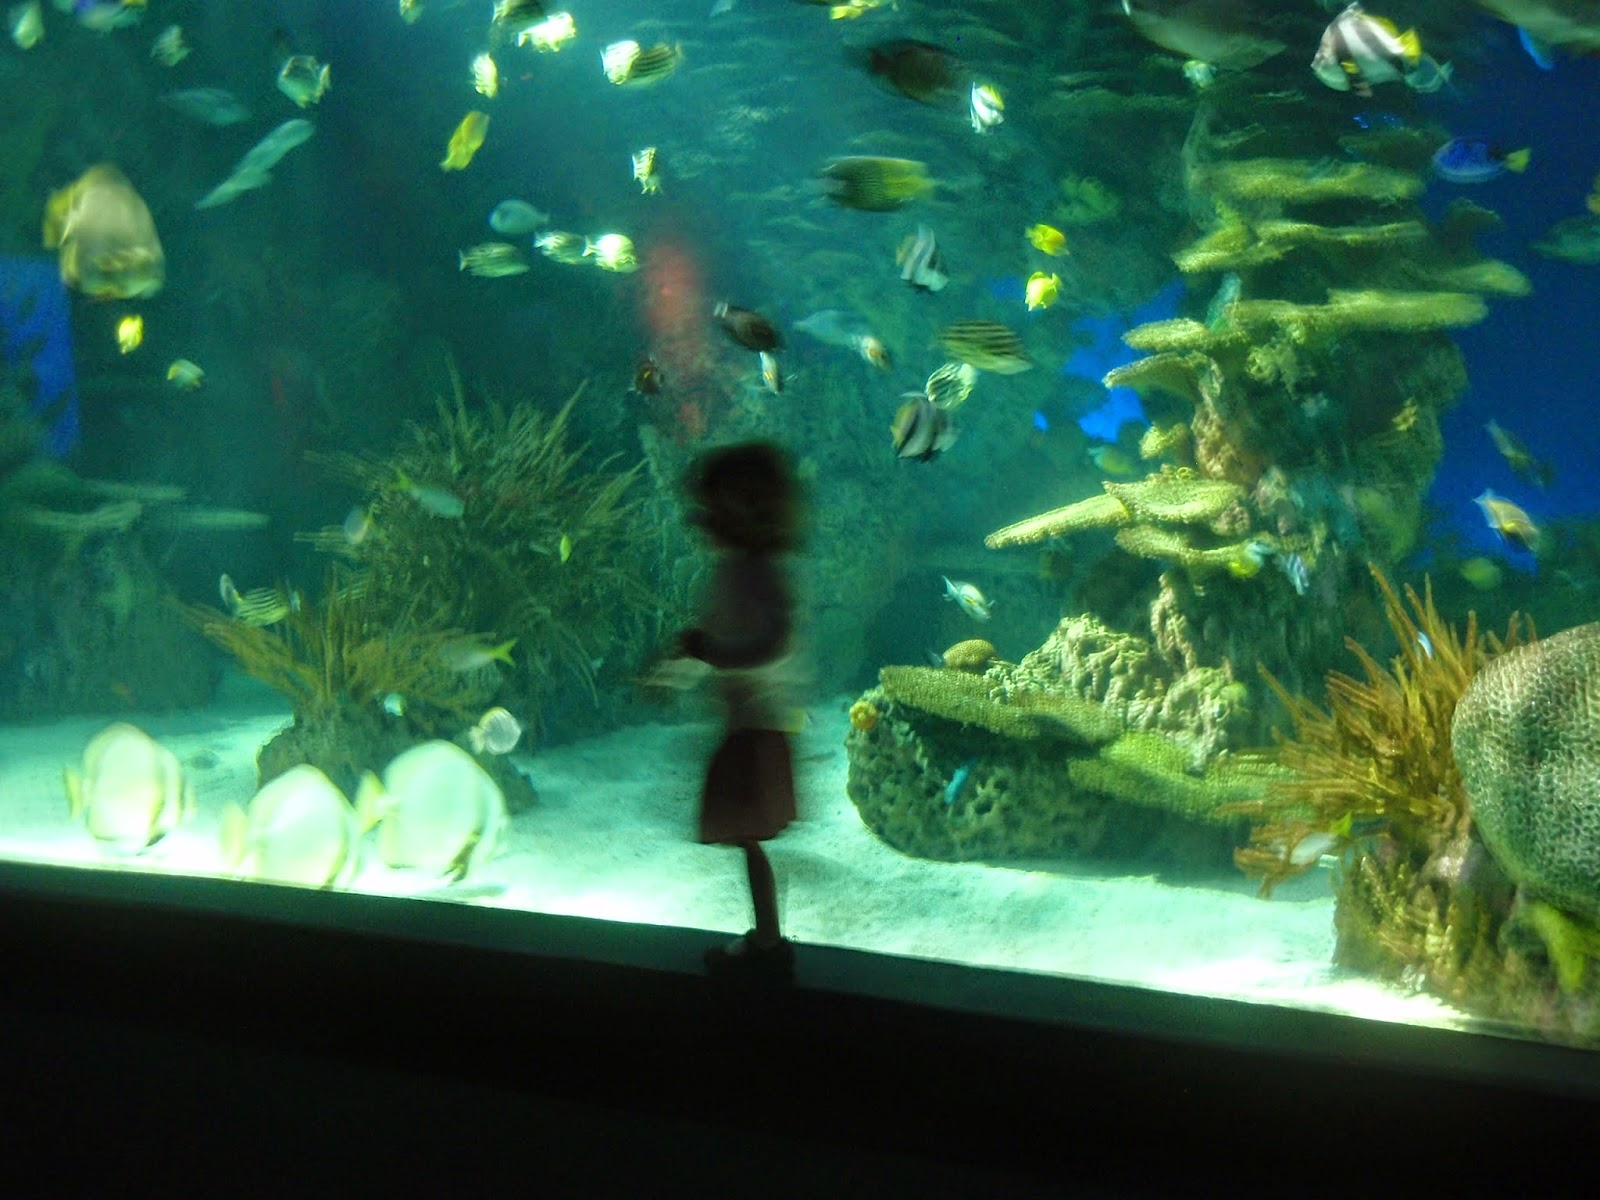 Blurry aquarium picture, field trip during ocean theme week preschool